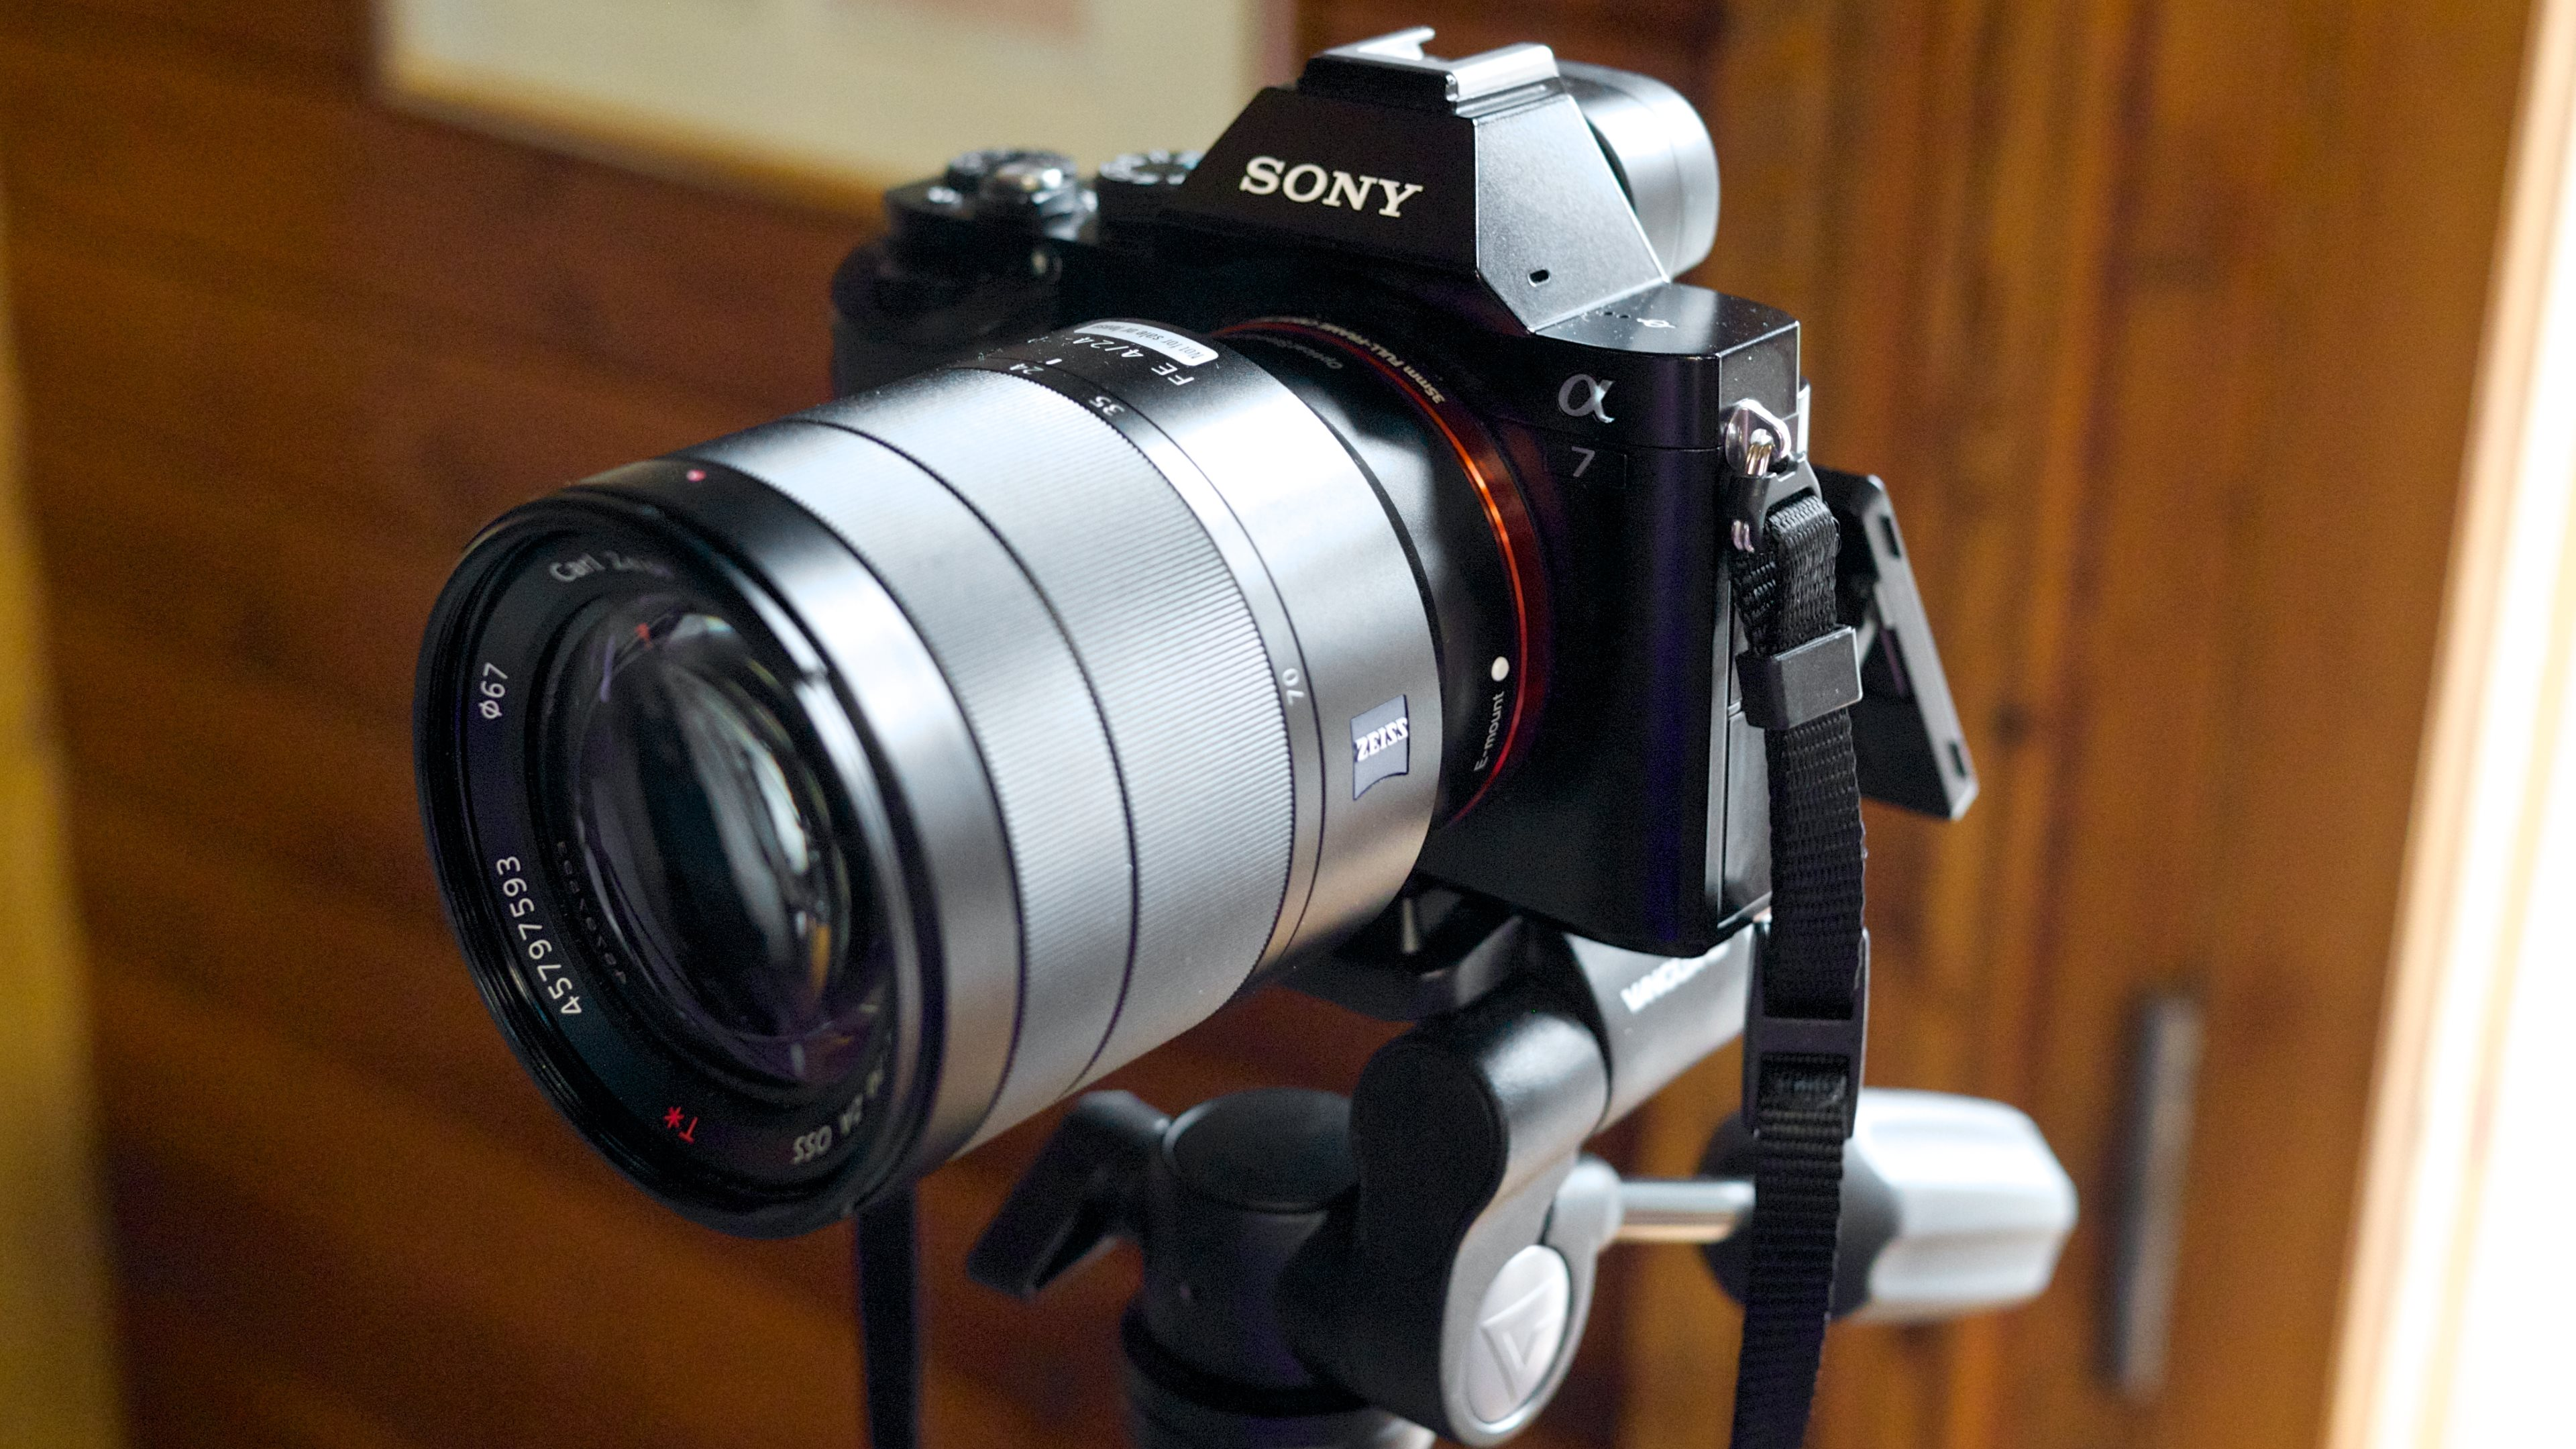 Sony Alpha Wallpaper Cynosure Laser Before And After Pictures